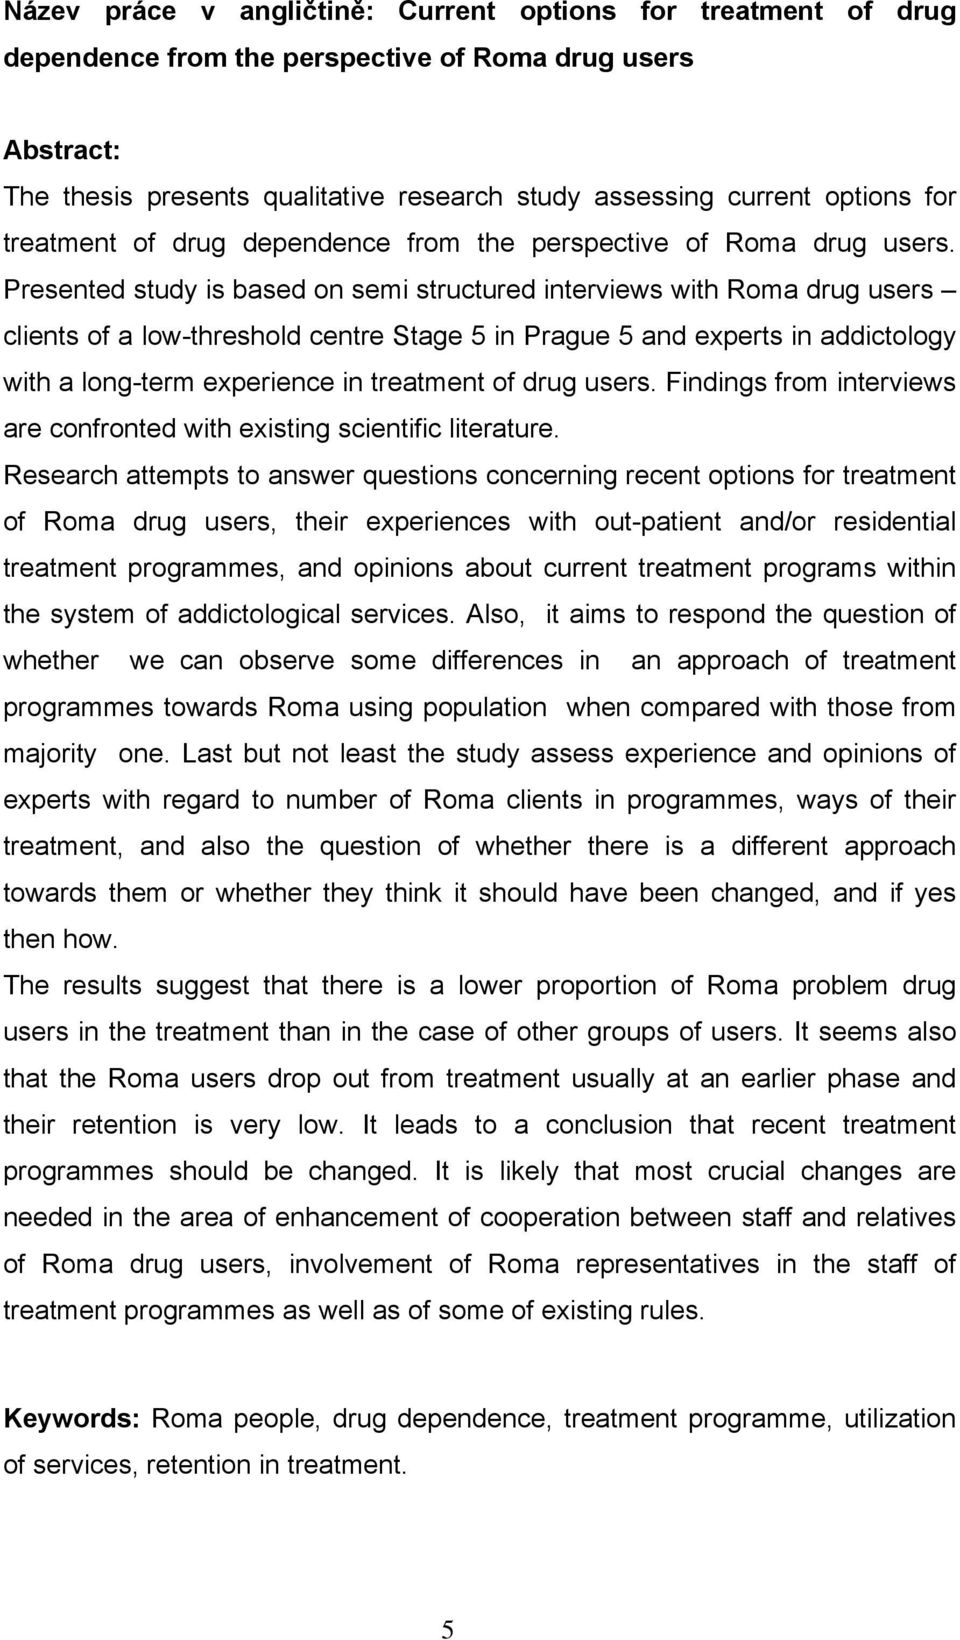 Presented study is based on semi structured interviews with Roma drug users clients of a low-threshold centre Stage 5 in Prague 5 and experts in addictology with a long-term experience in treatment